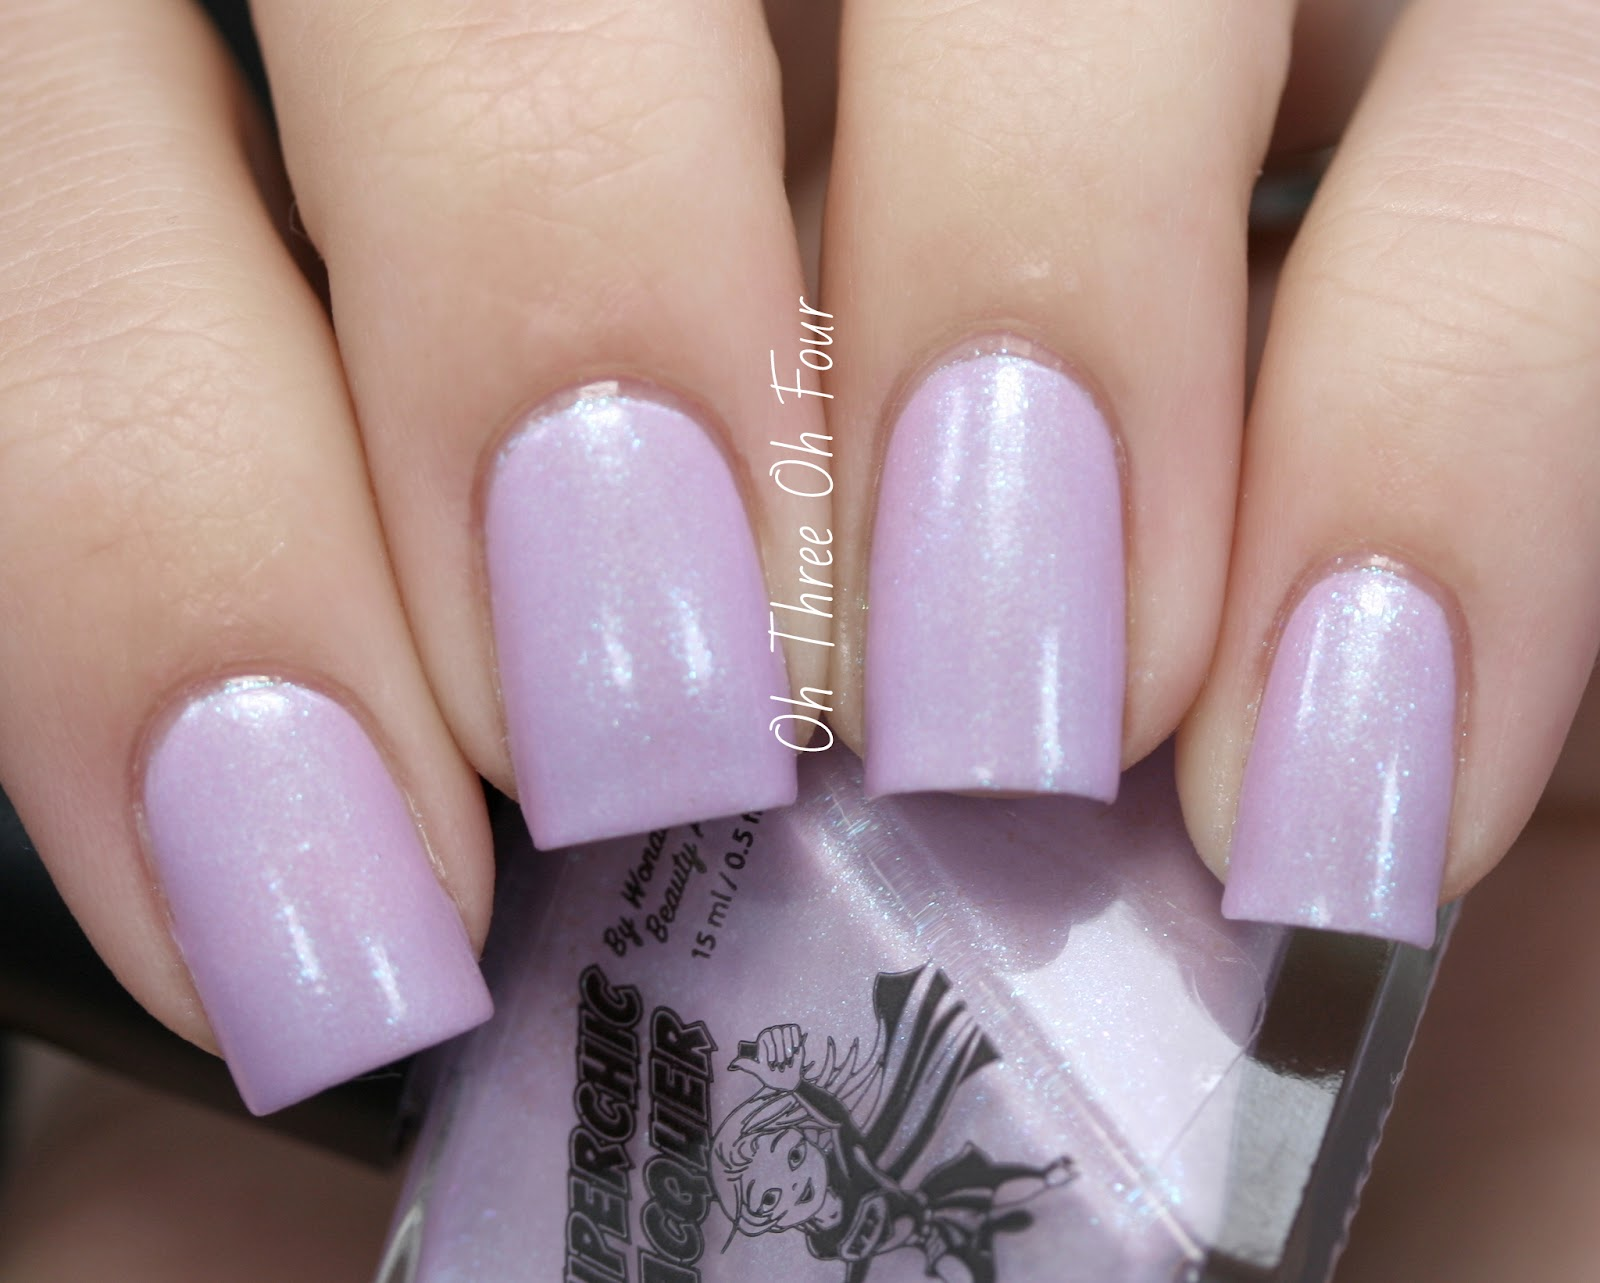 SuperChic Lacquer Shrinking Violet Swatch